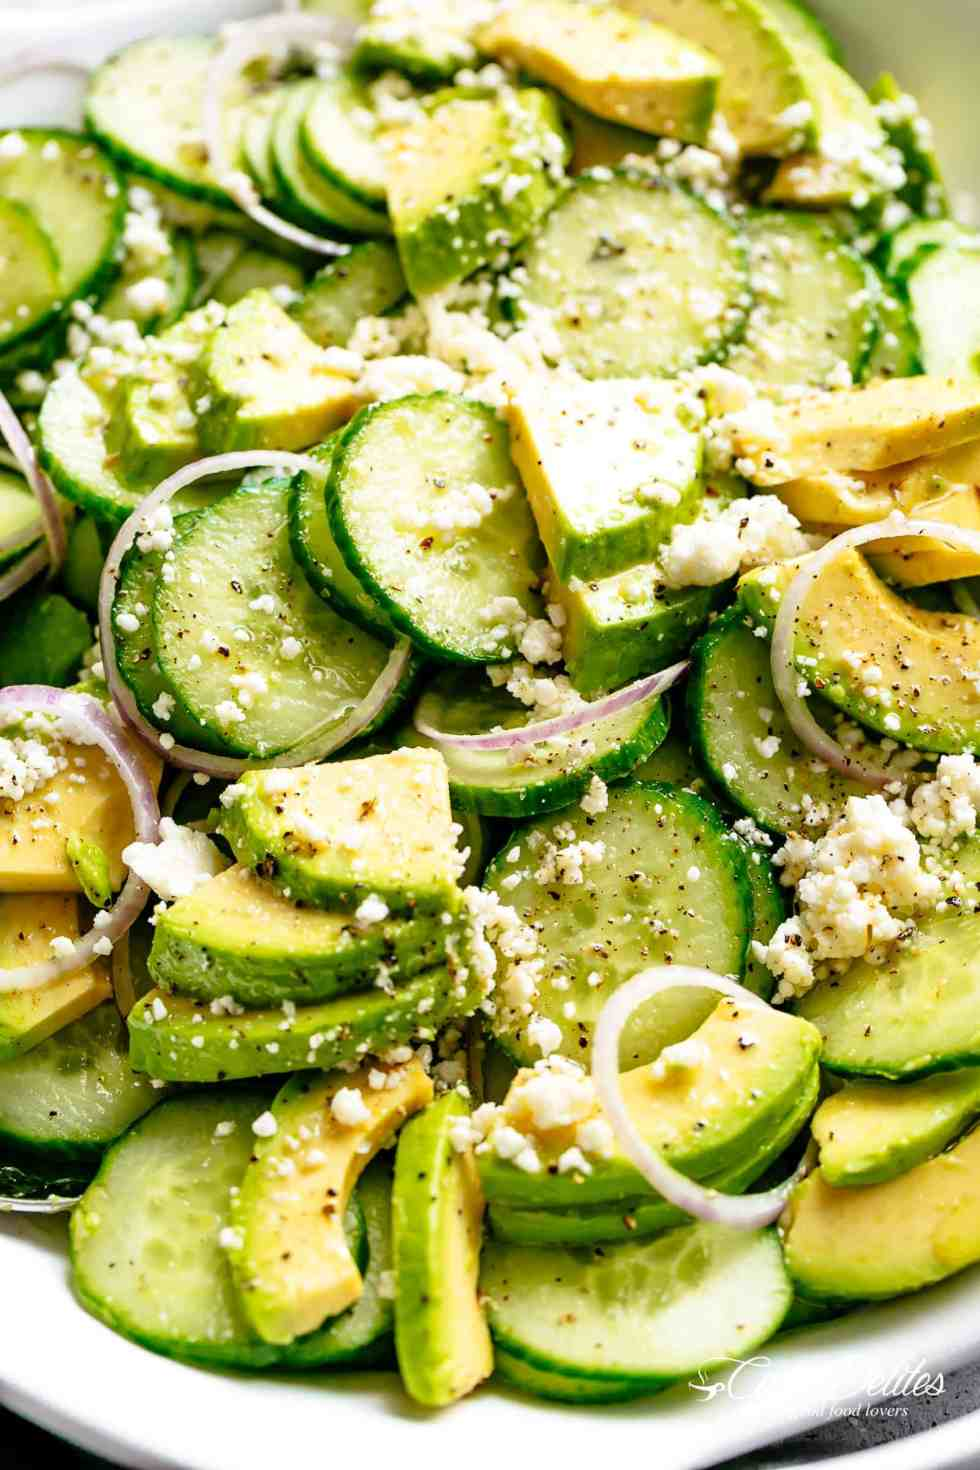 Avocado Feta Cucumber Salad with a delicious Greek inspired salad dressing or vinaigrette! | cafedelites.com